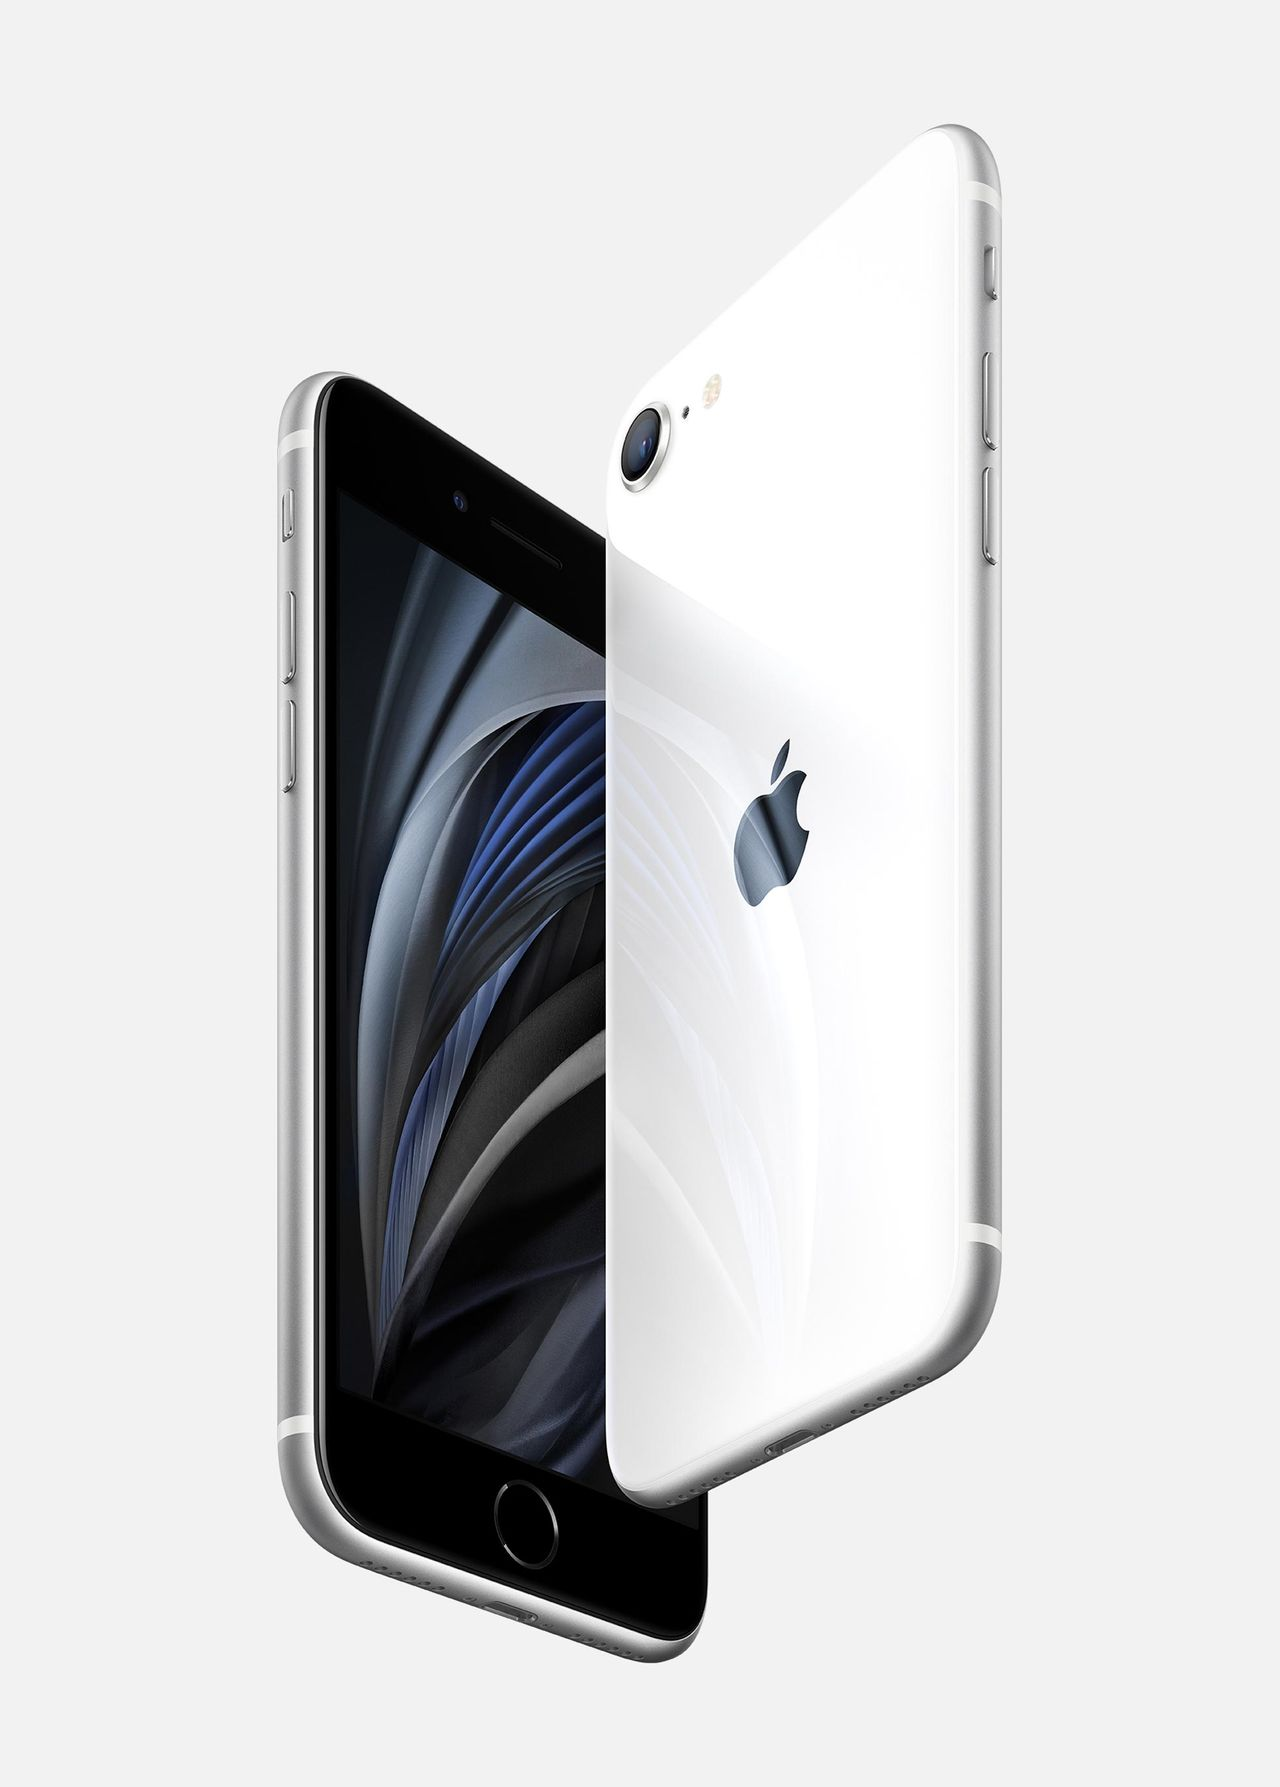 Apple releases new iPhone SE